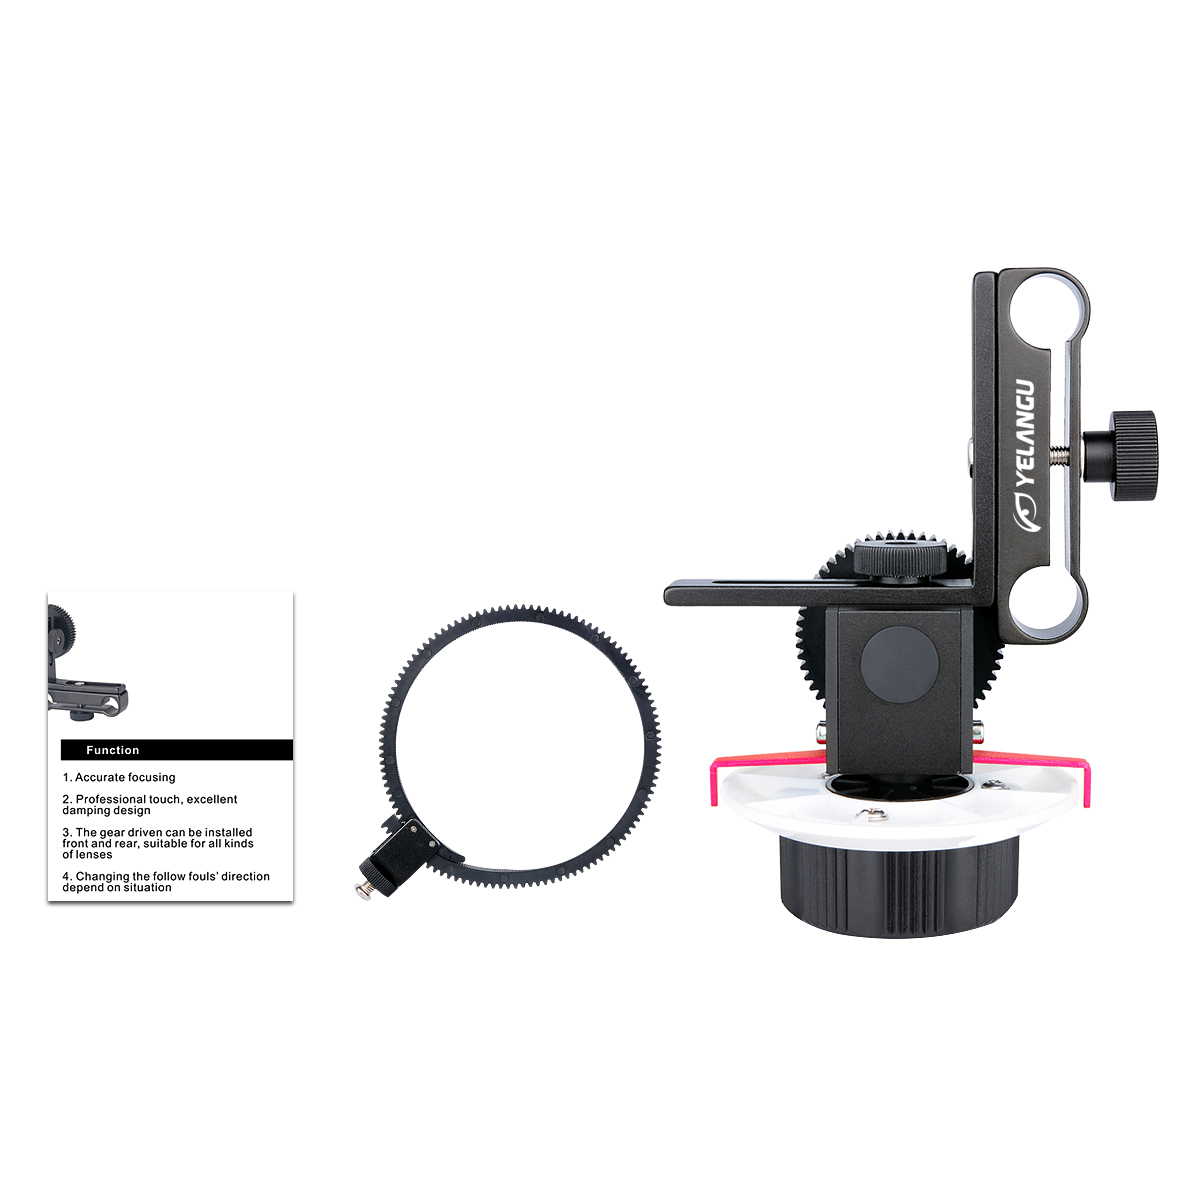 DSLR Camera Follow Focus Quick Fixed Photography Focalizer Precise Adjust Gear for Canon EOS60D 600D SLR Digital Cameras red